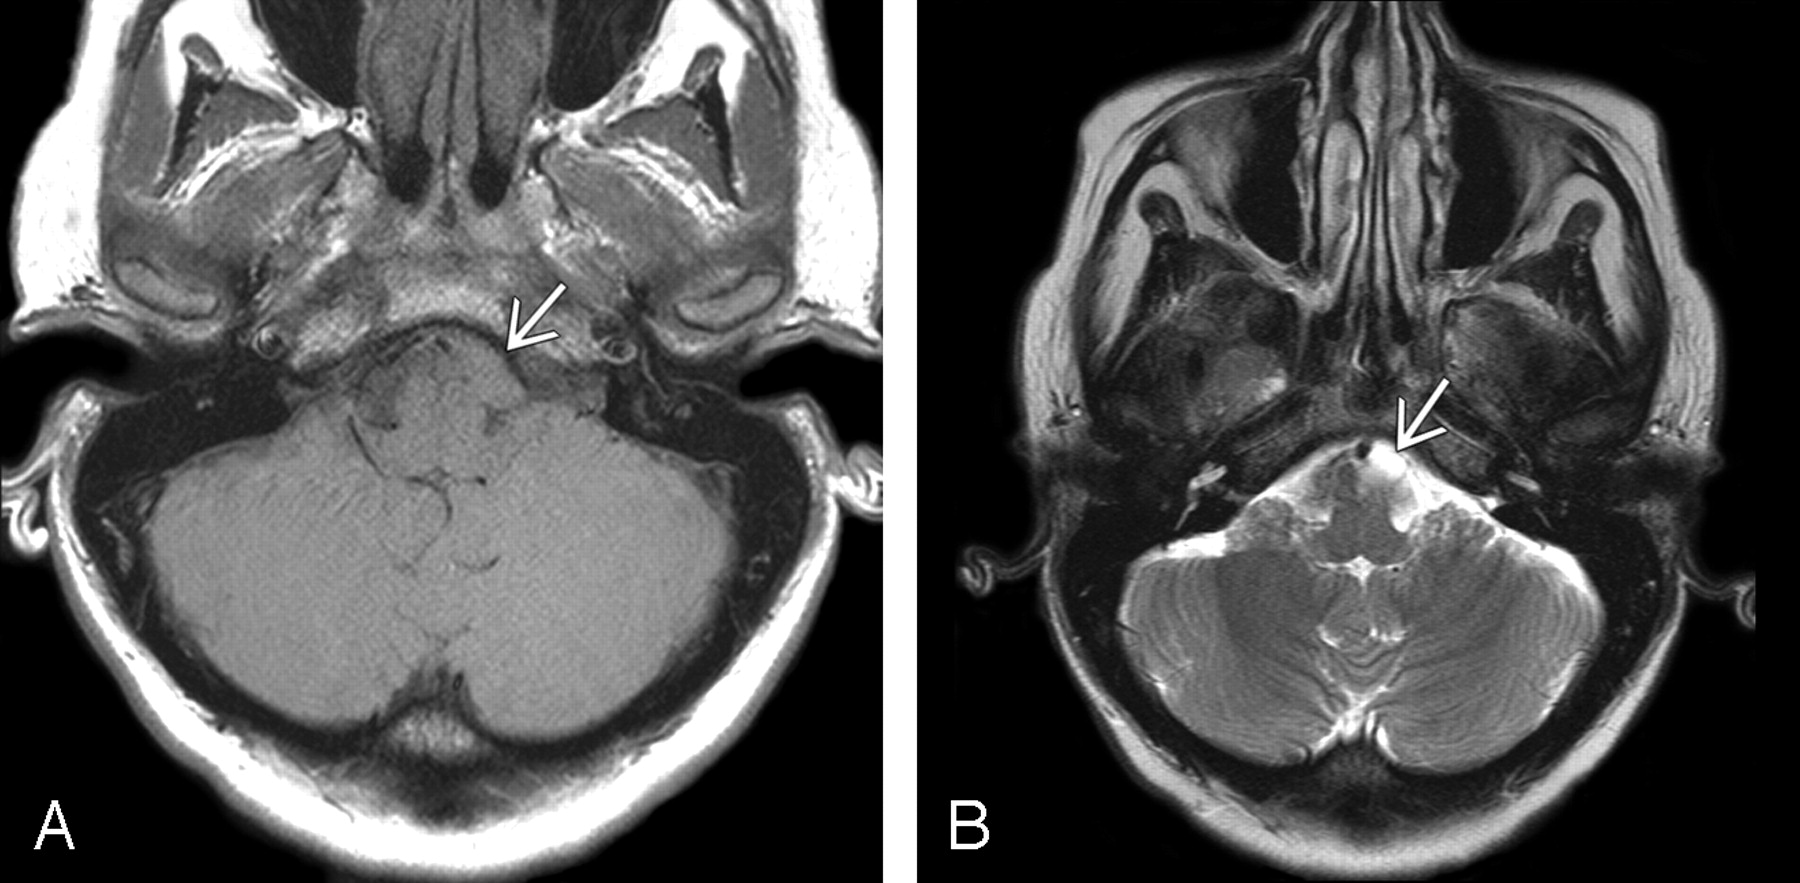 Intracranial Neurenteric Cysts Imaging And Pathology Spectrum